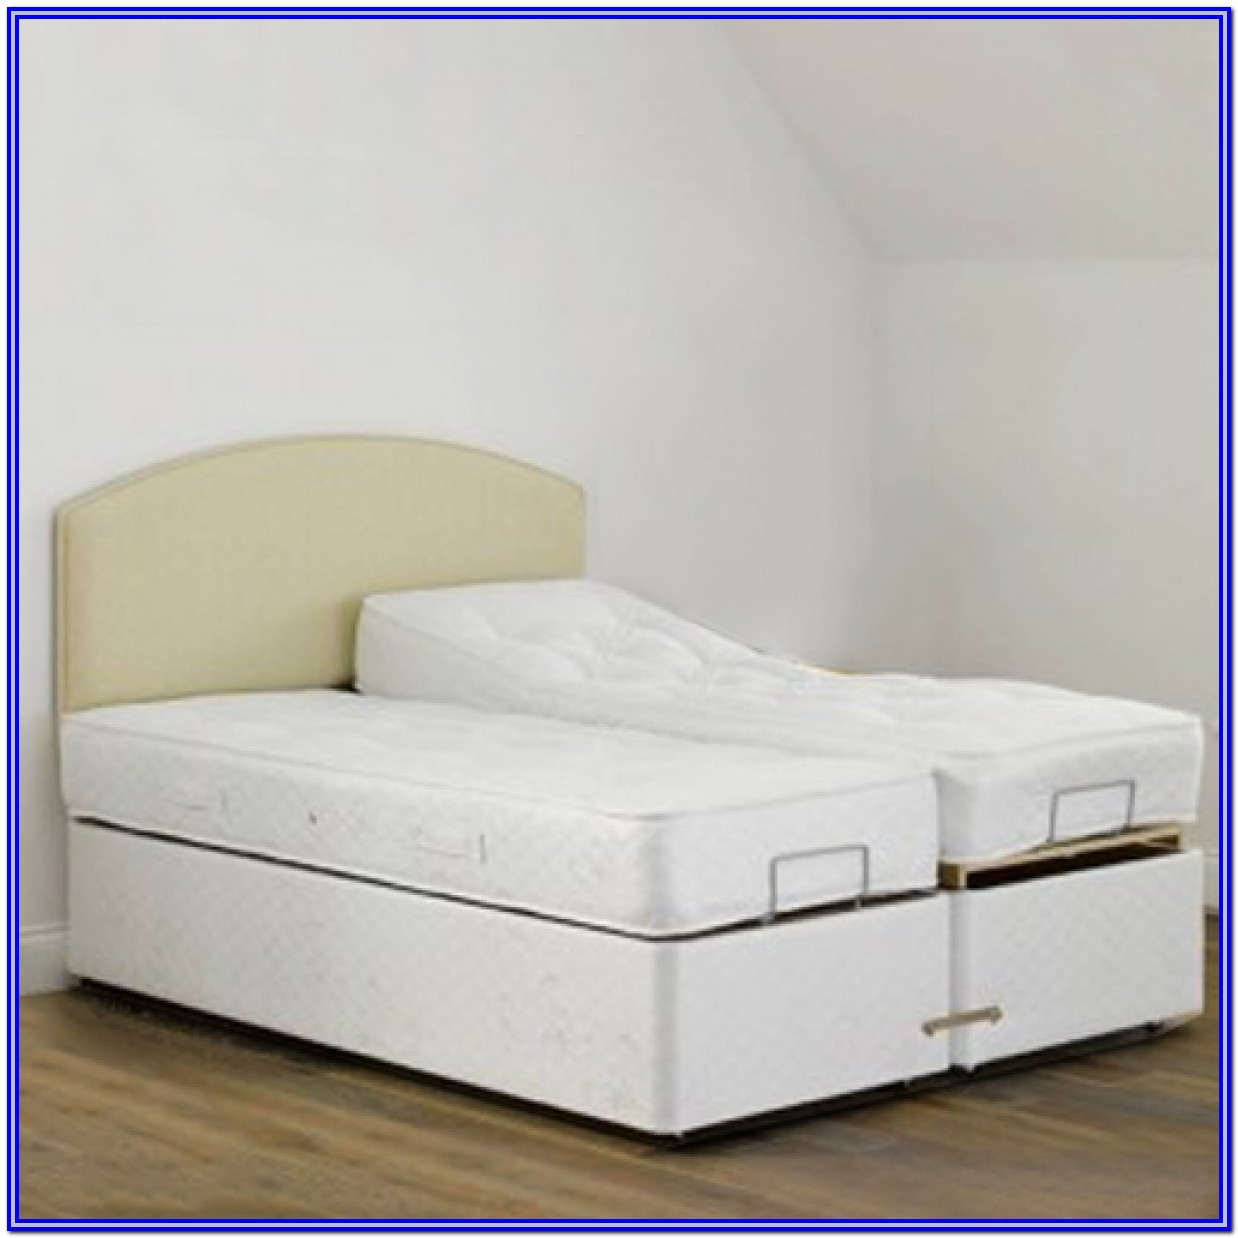 King Size Adjustable Bed Uk